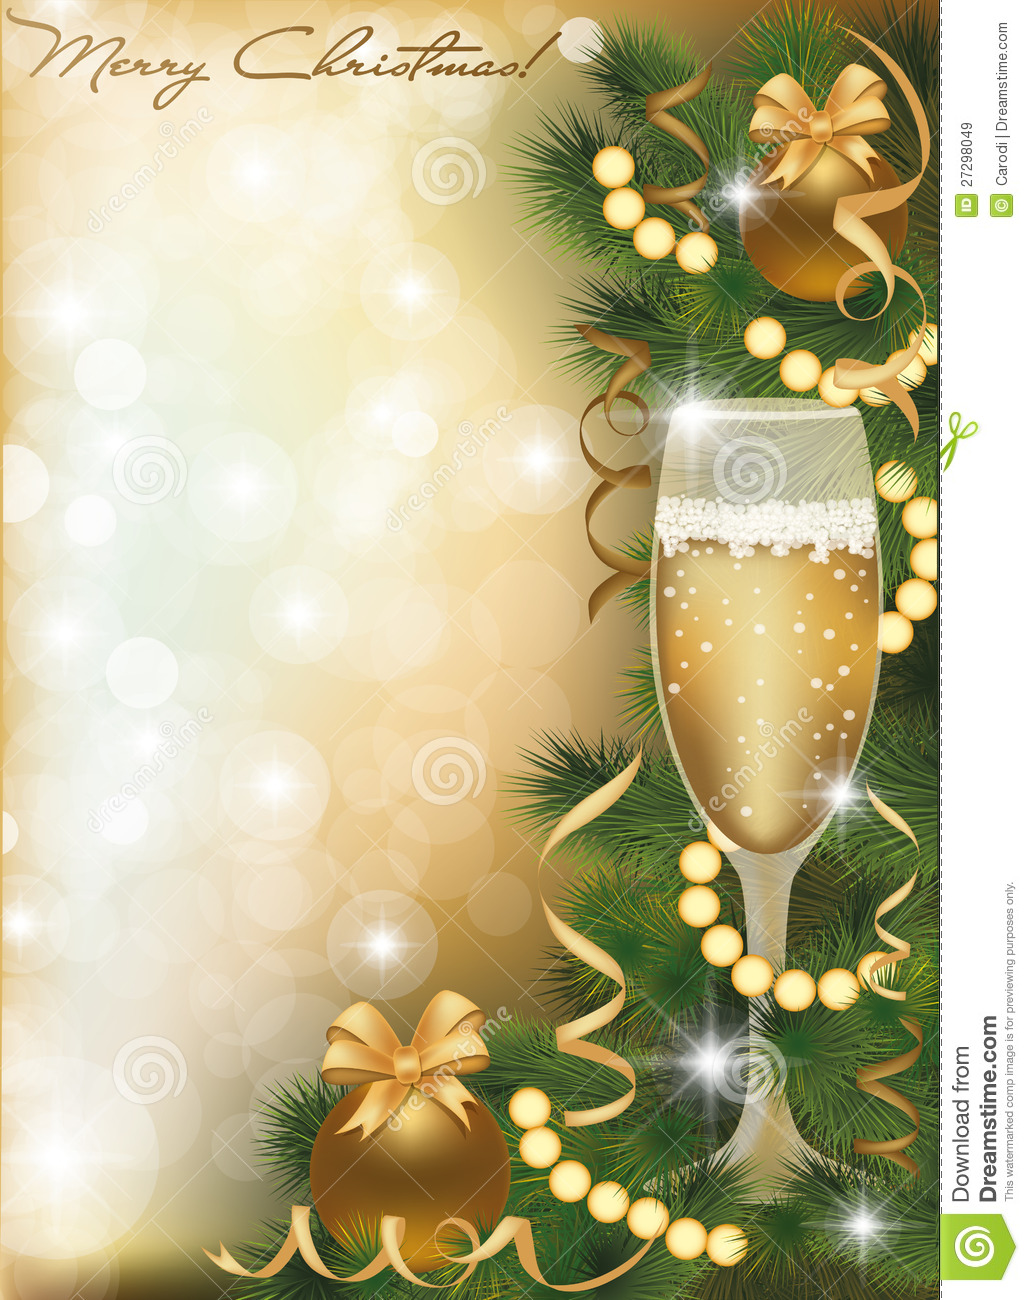 Merry Christmas Greeting Card With Champagne Royalty Free